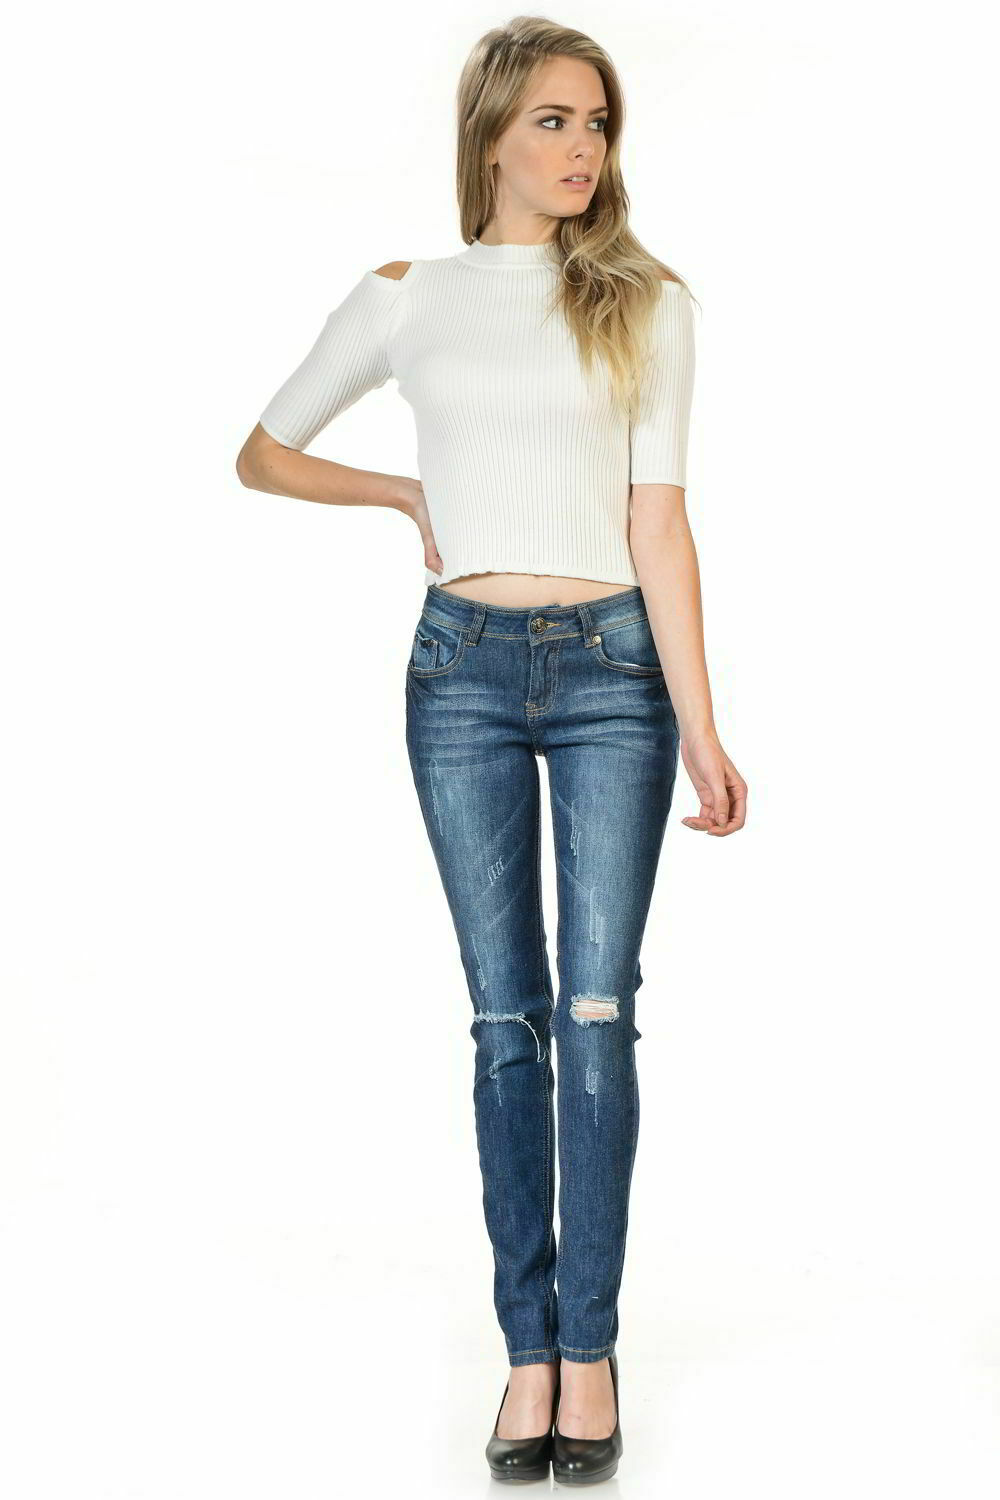 Sweet Look Premium Edition Women's Jeans - Skinny - Style M523-R